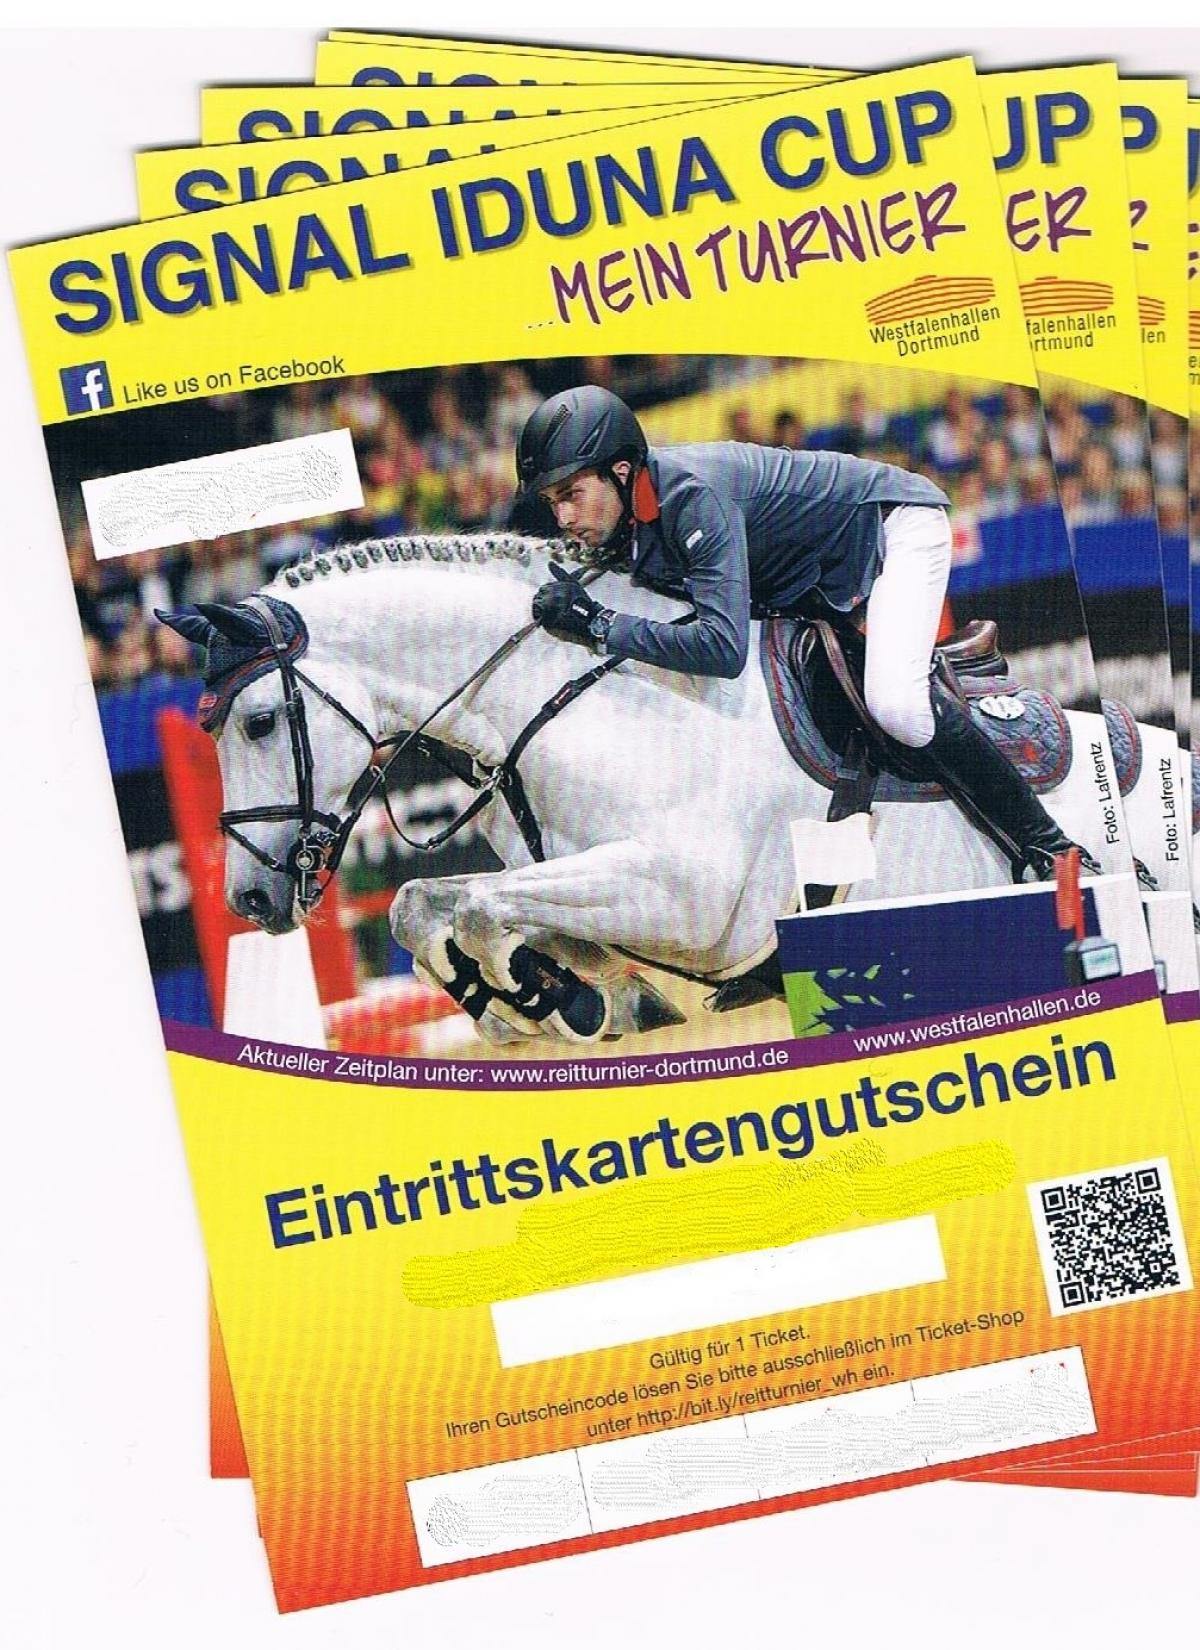 Tradition, Spitzensport und Shopping–der SIGNAL IDUNA CUP